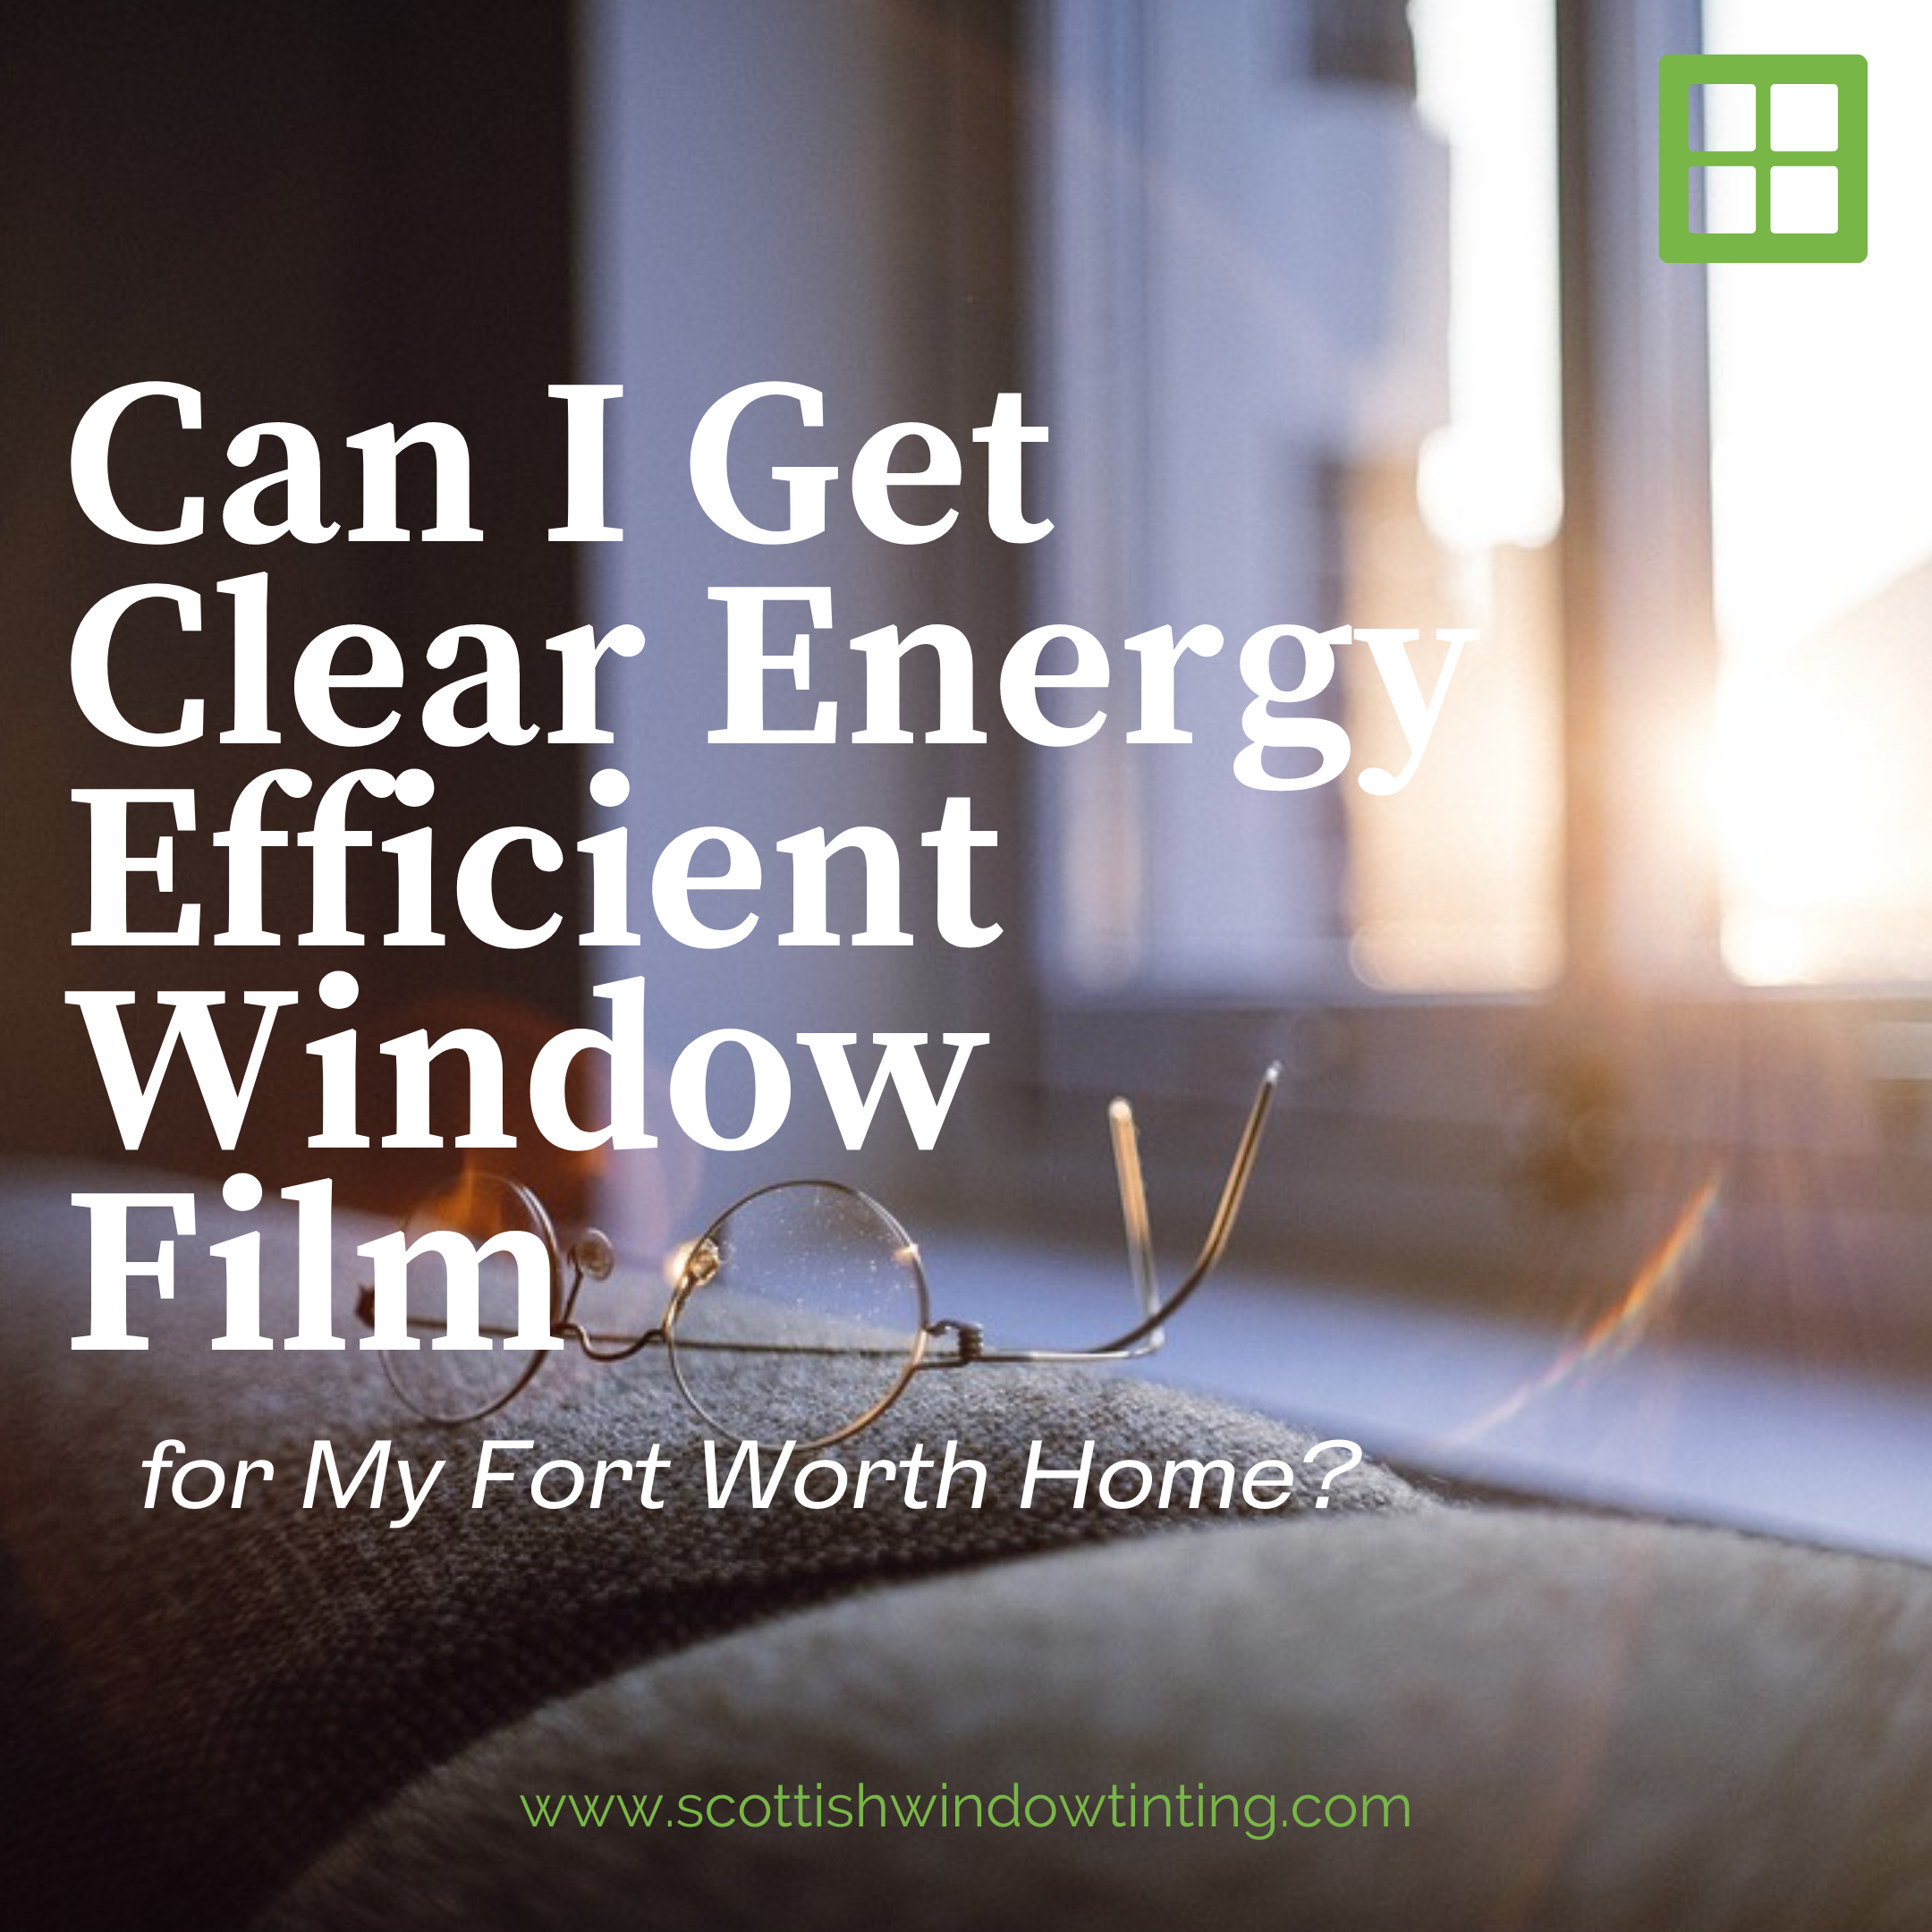 Can I Get Clear Energy Efficient Window Film for My Fort Worth Home?